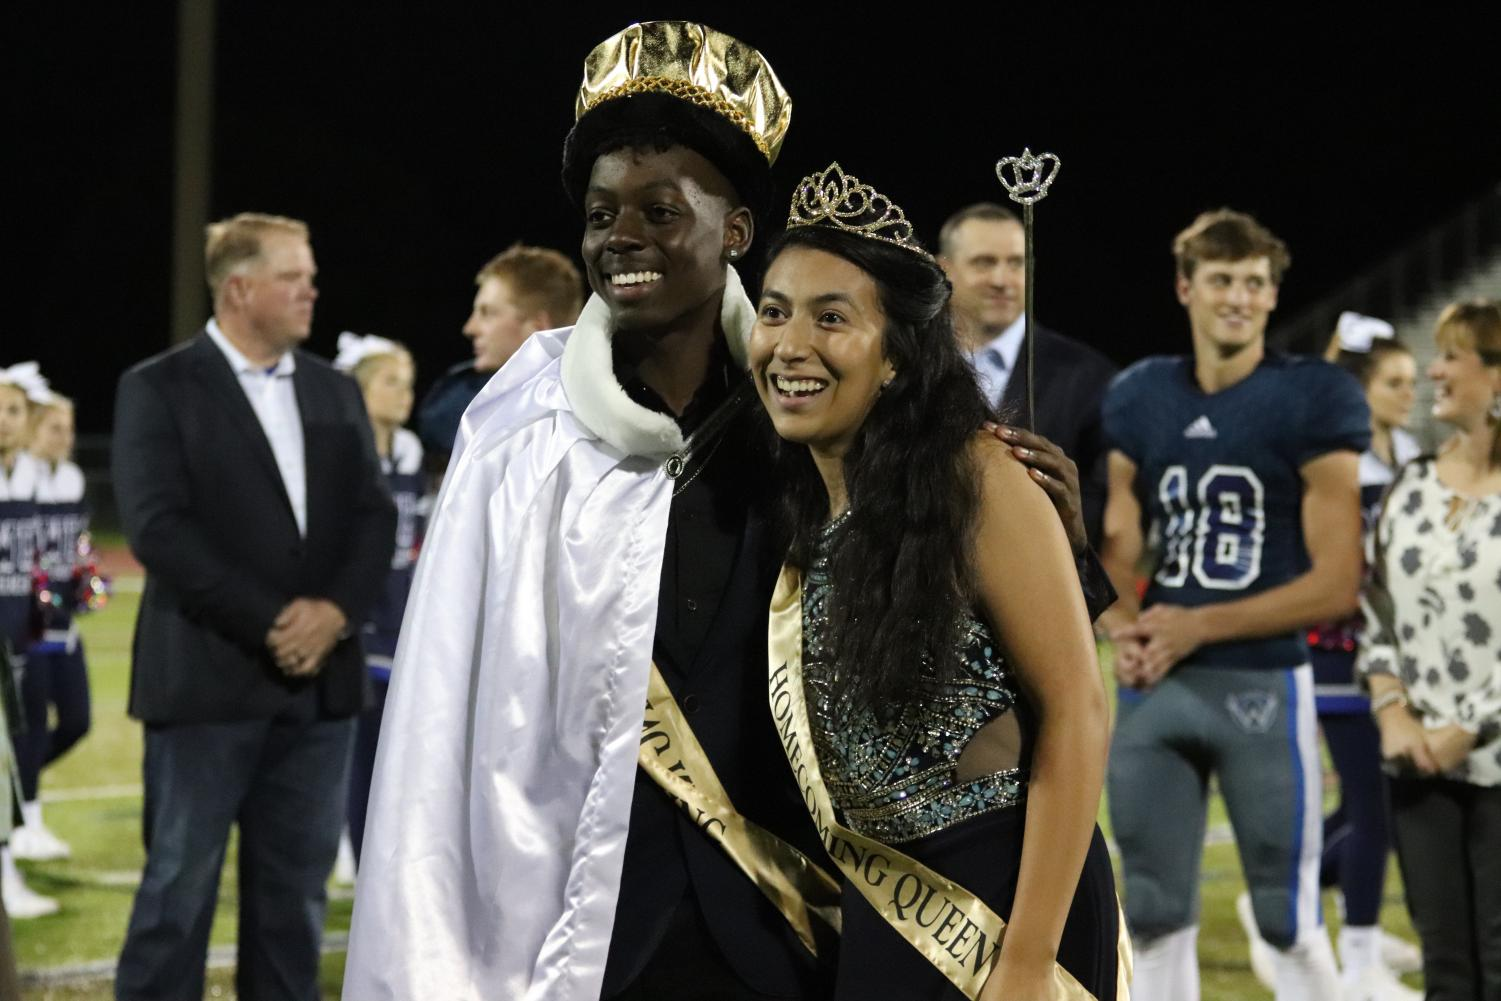 Homecoming King and Queen Austin Curry and Donna Garcia pose for pictures after being crowned.